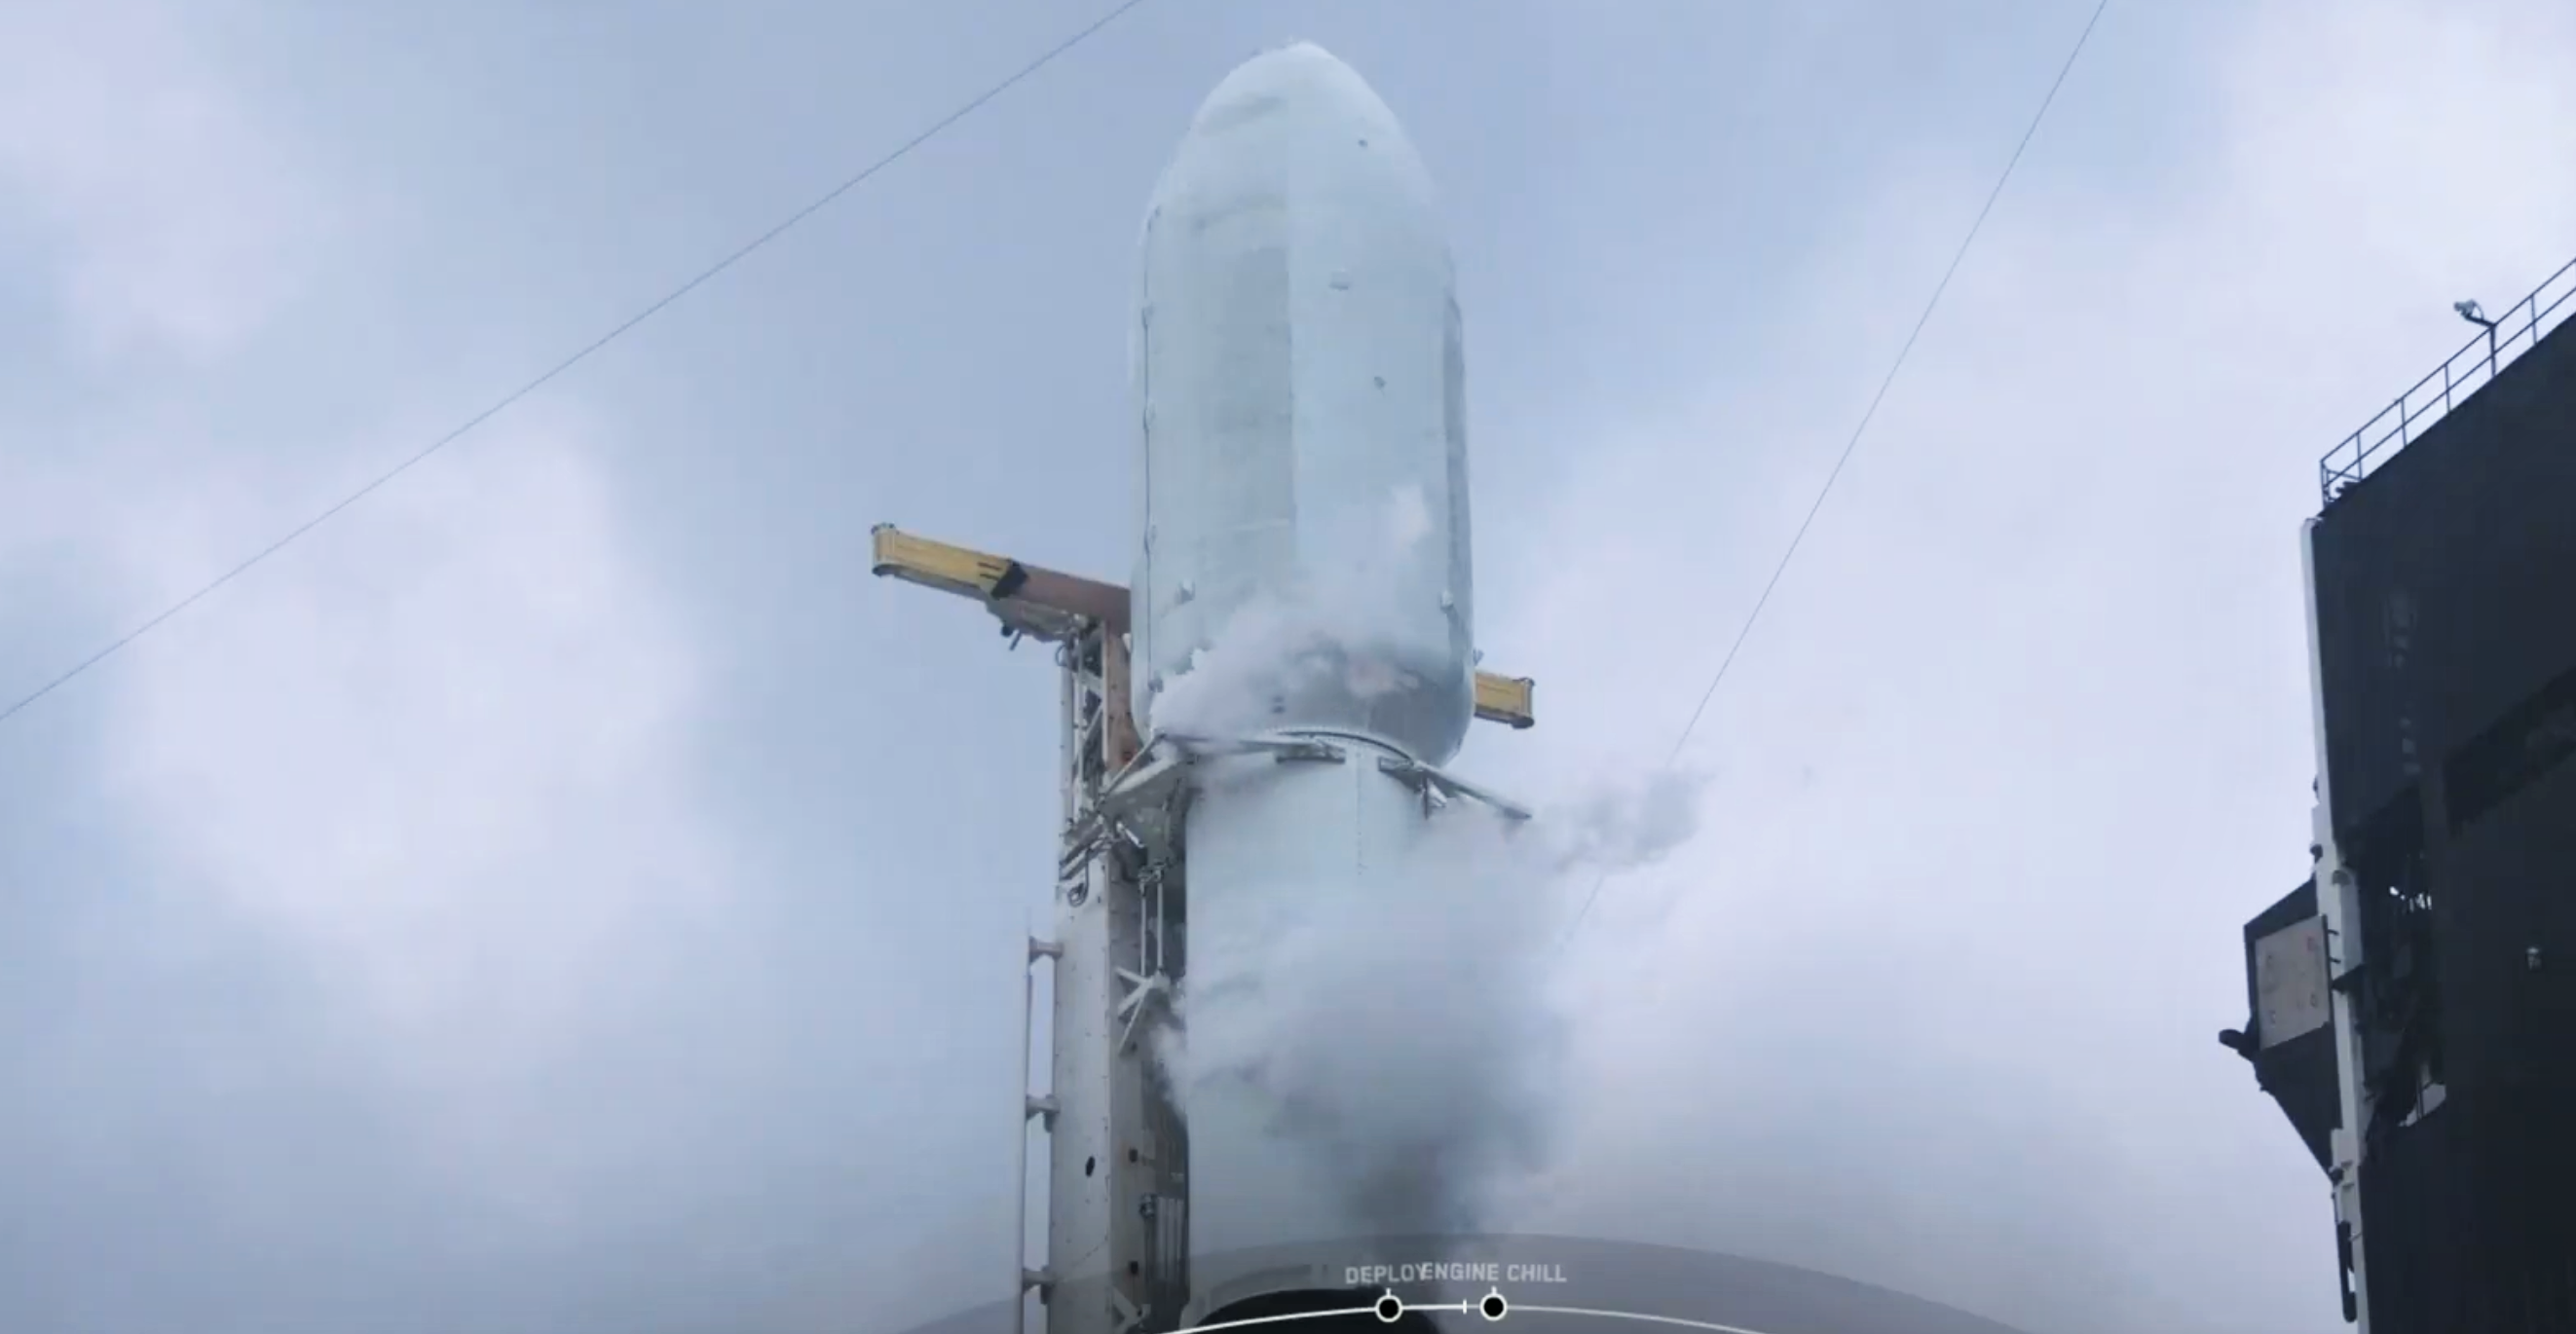 Starlink-12 Falcon 9 B1058 Pad 39A 092820 webcast (SpaceX) 3